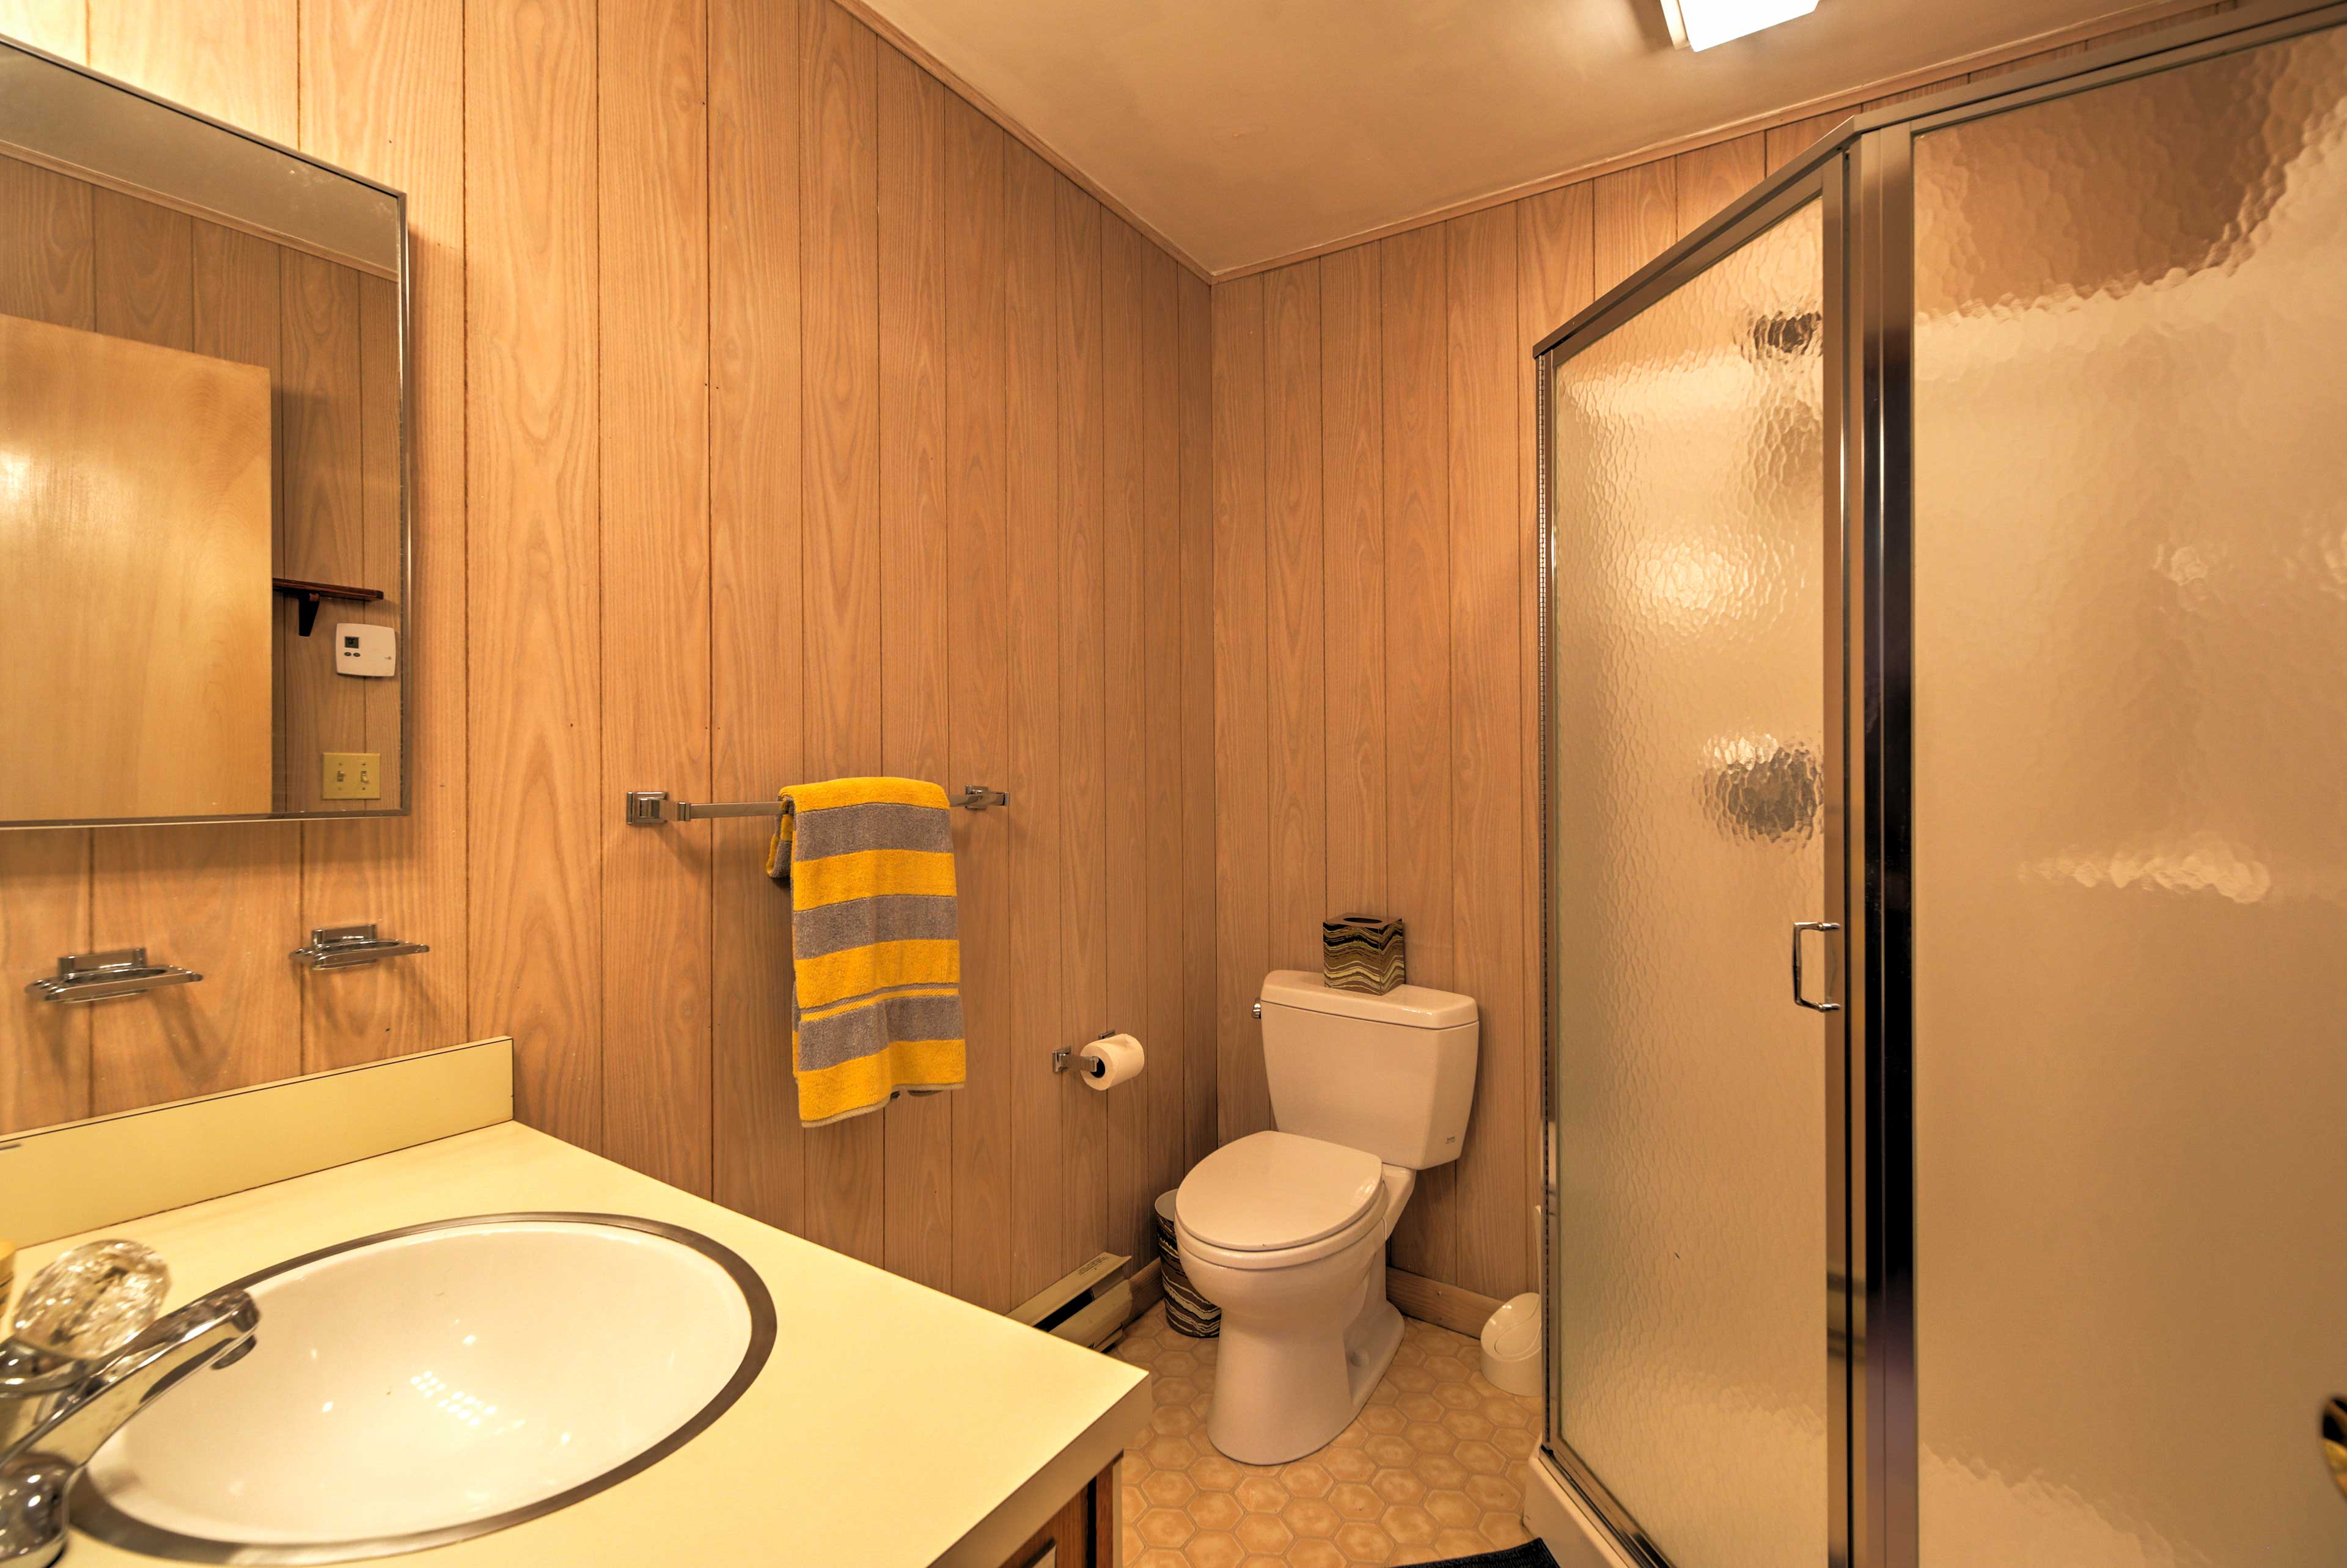 This en-suite bathroom features a spacious walk-in shower and warm wood paneling